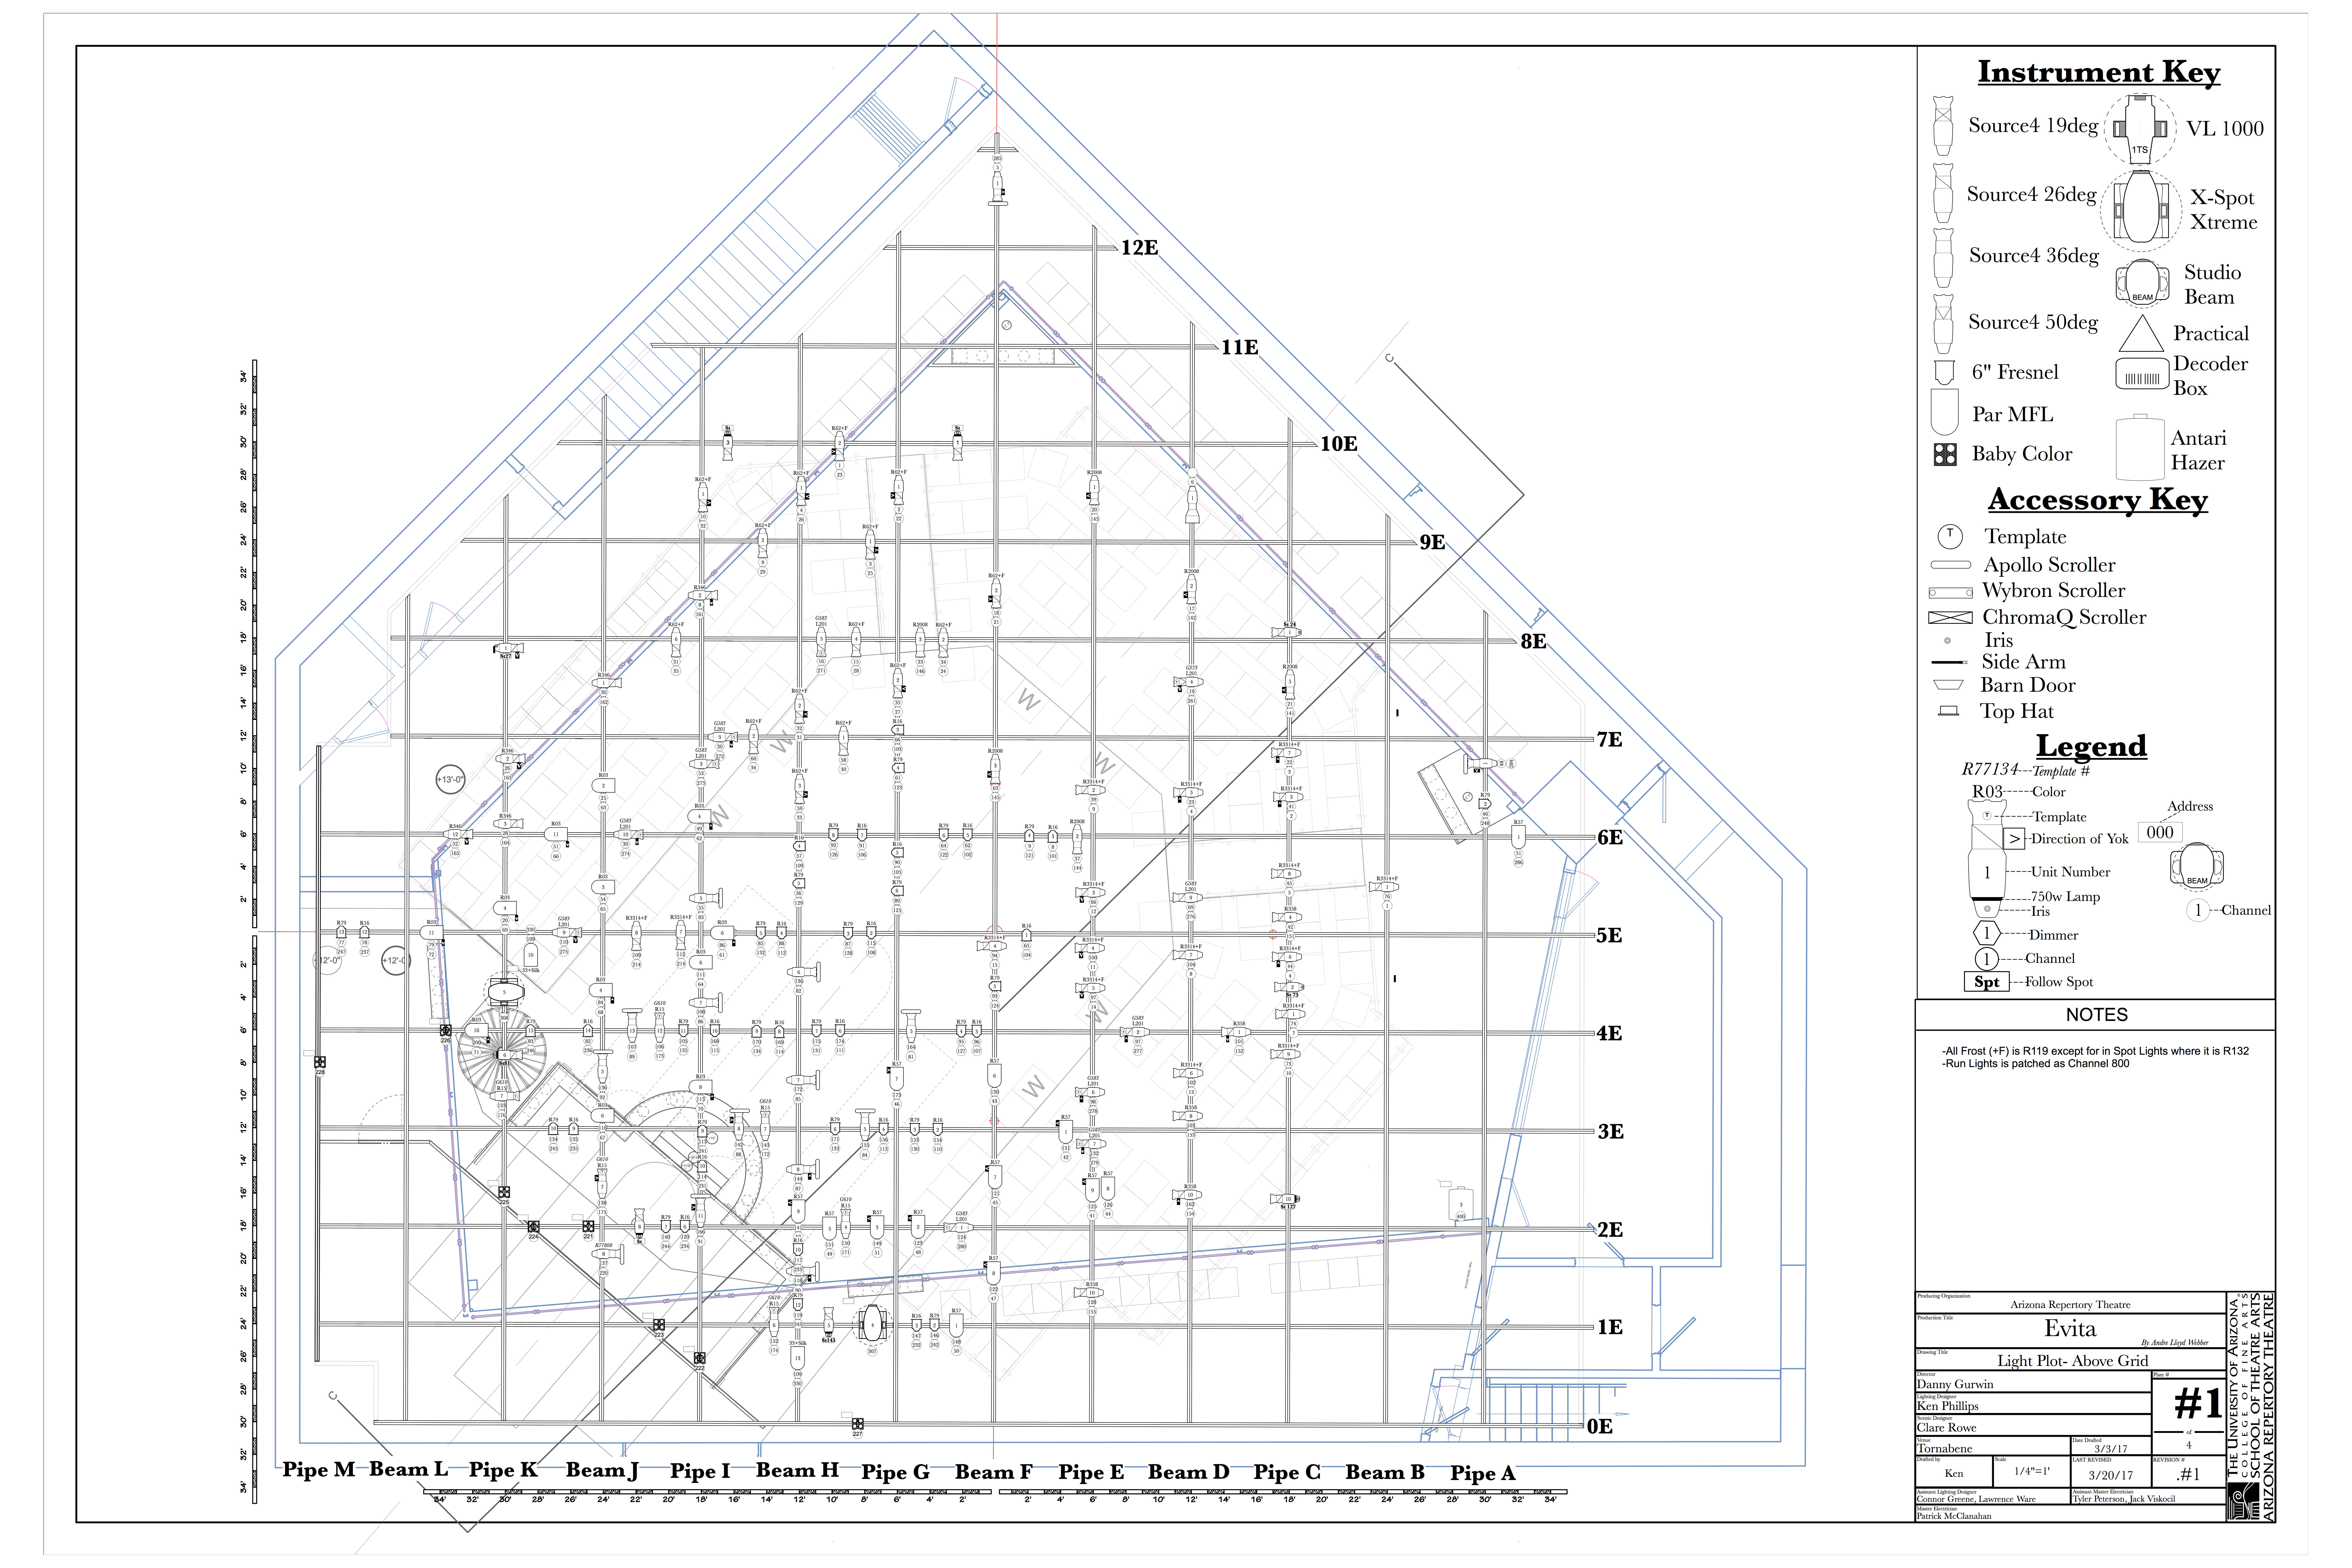 Evita Light Plot- Plate 1